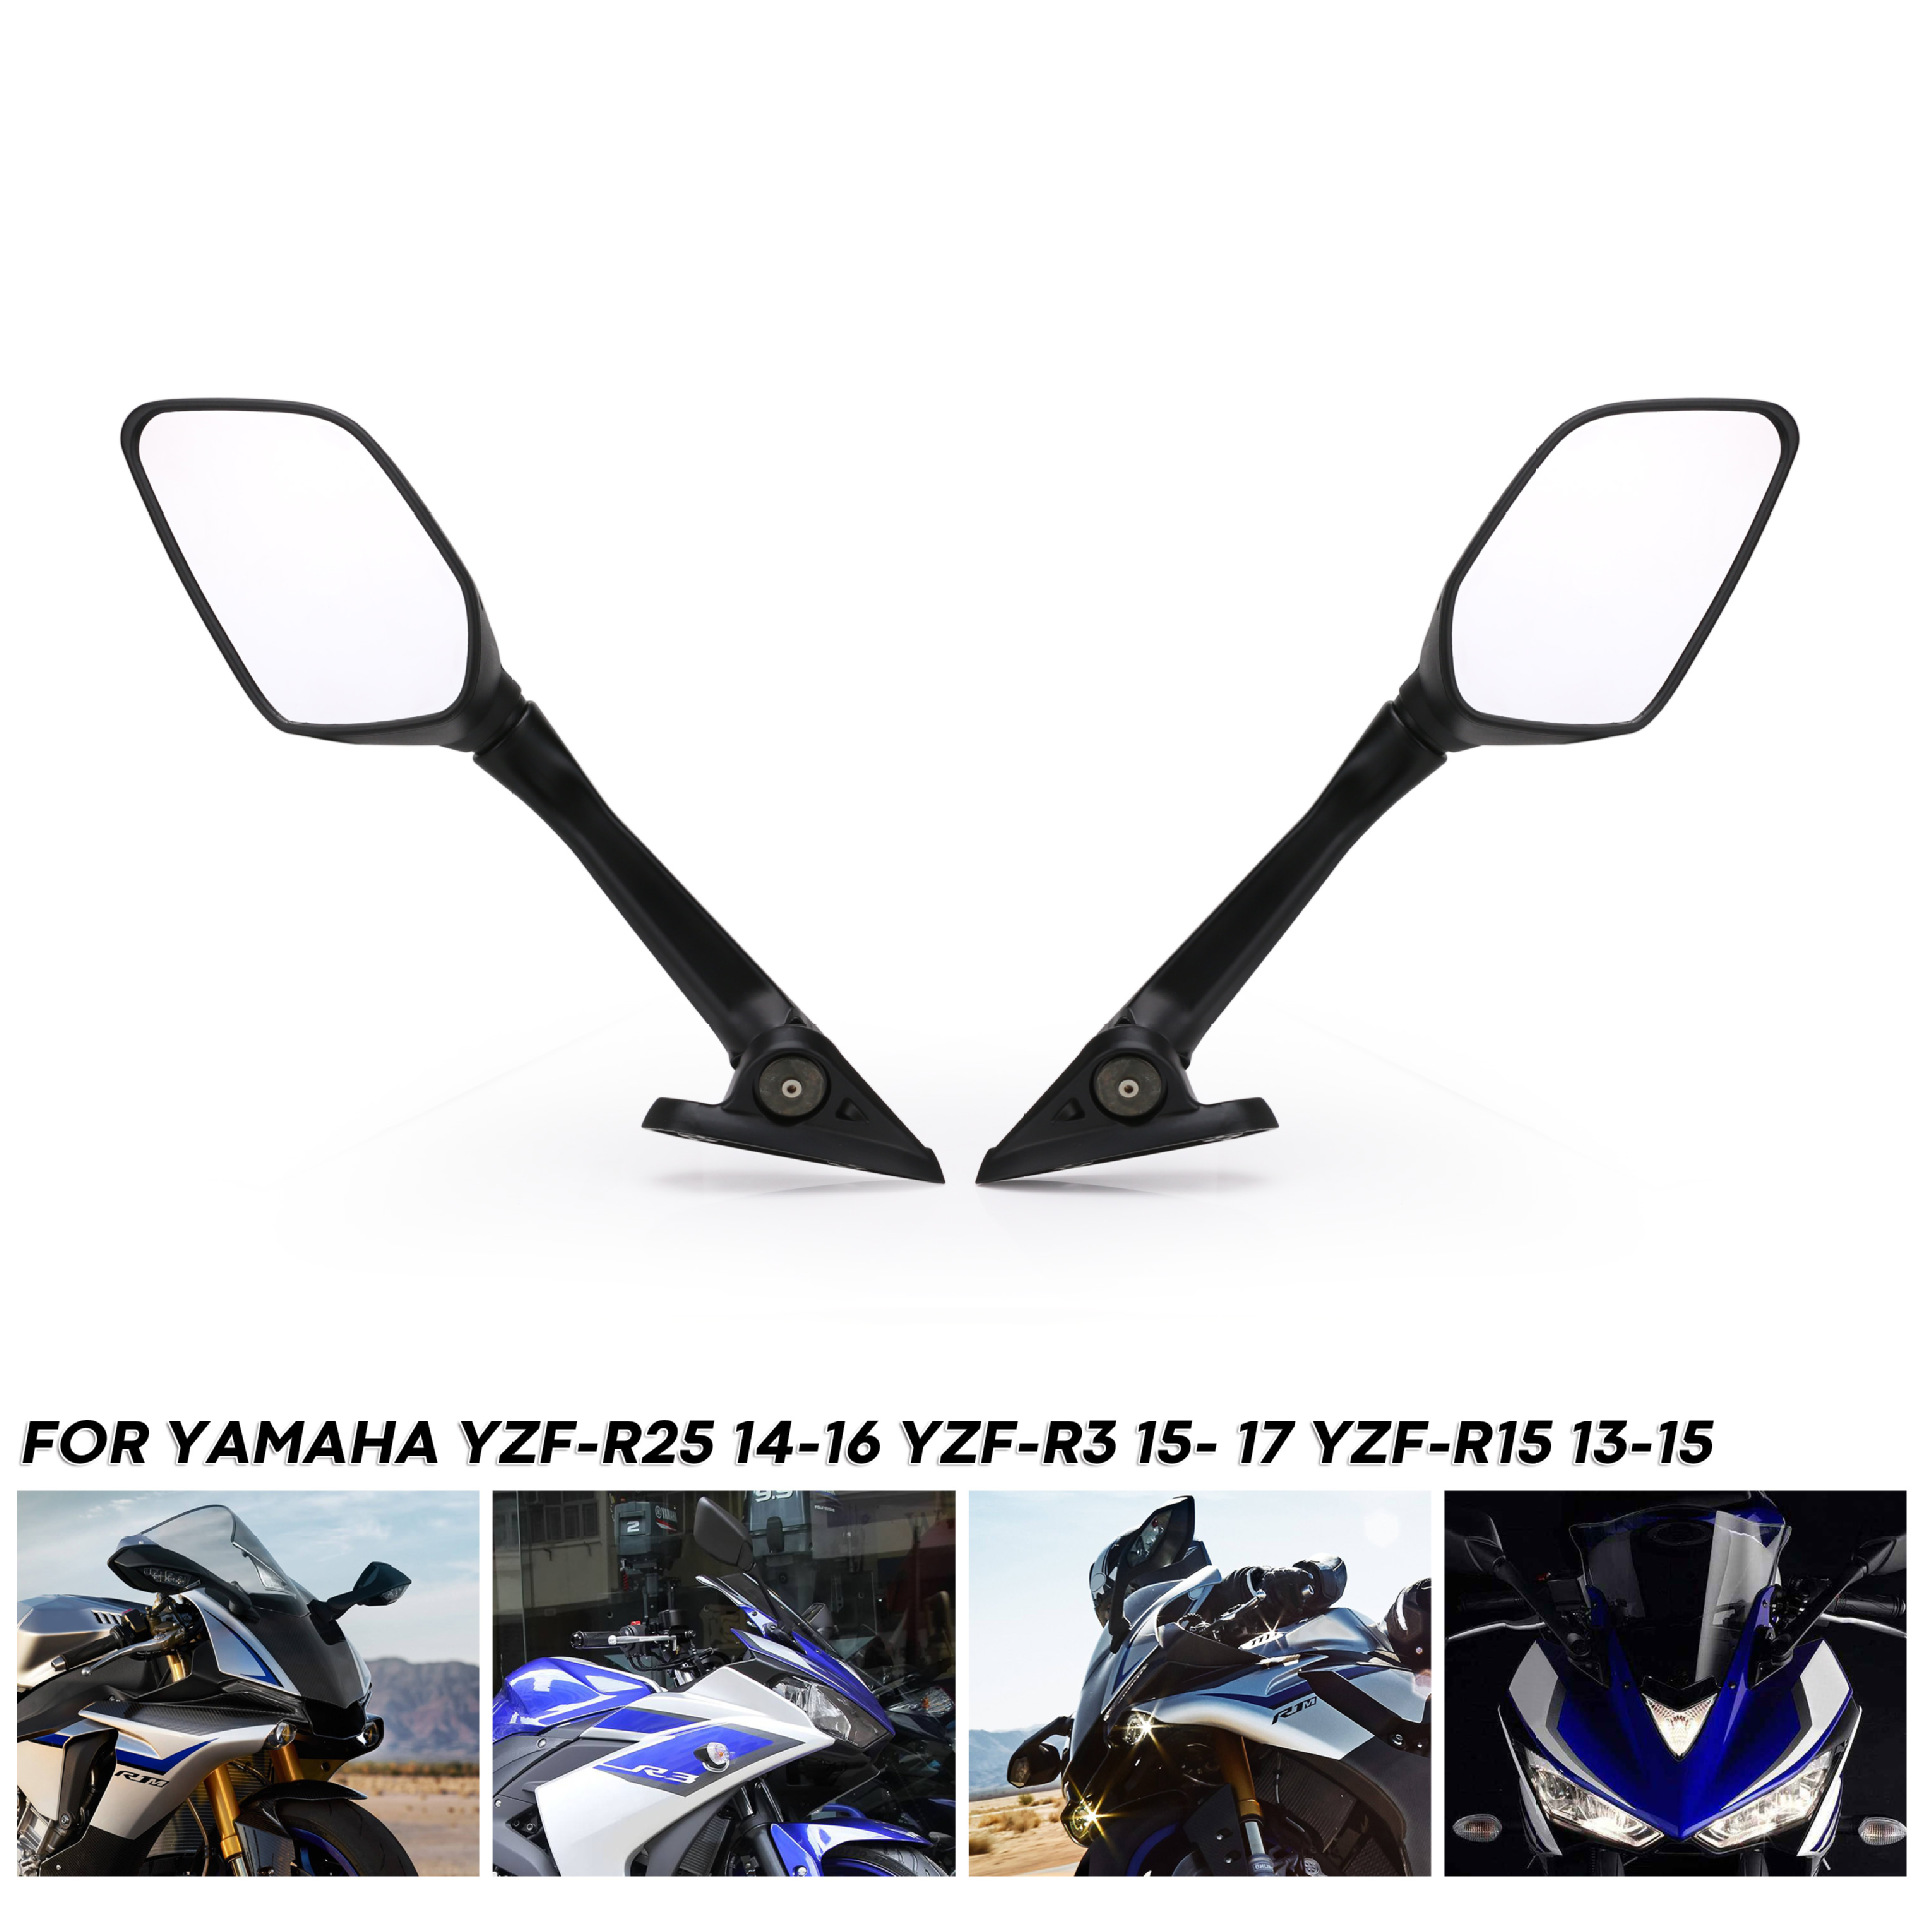 2pcs Motorcycle Rearview Mirrors Moto Side Rear View Mirrors for Yamaha YZF-R2 R3 R15 14-17